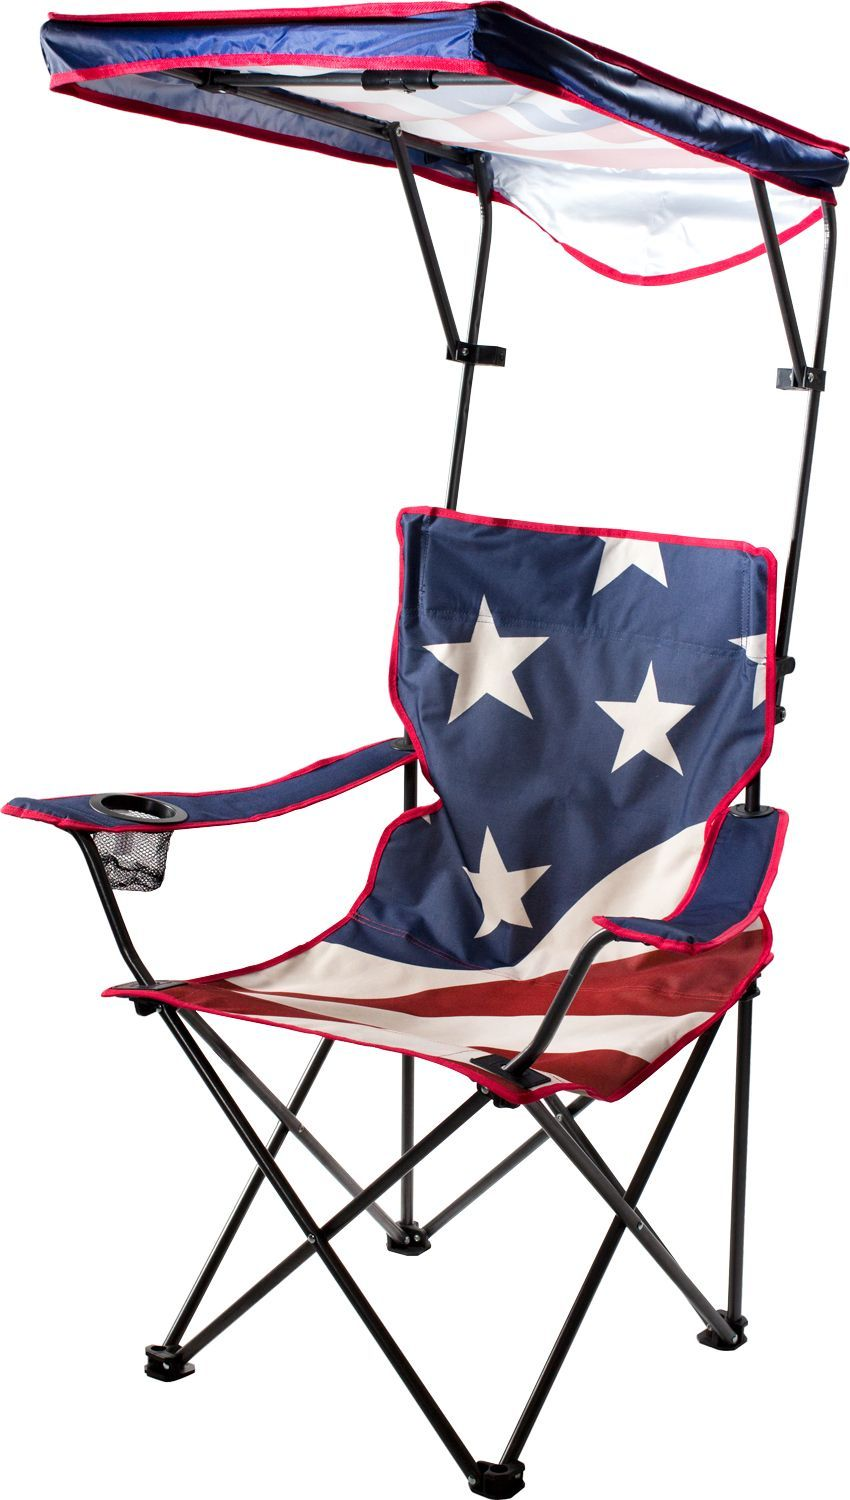 Camping Chair With Canopy Quik Shade Us Flag Adjustable Canopy Folding Chair In 2018